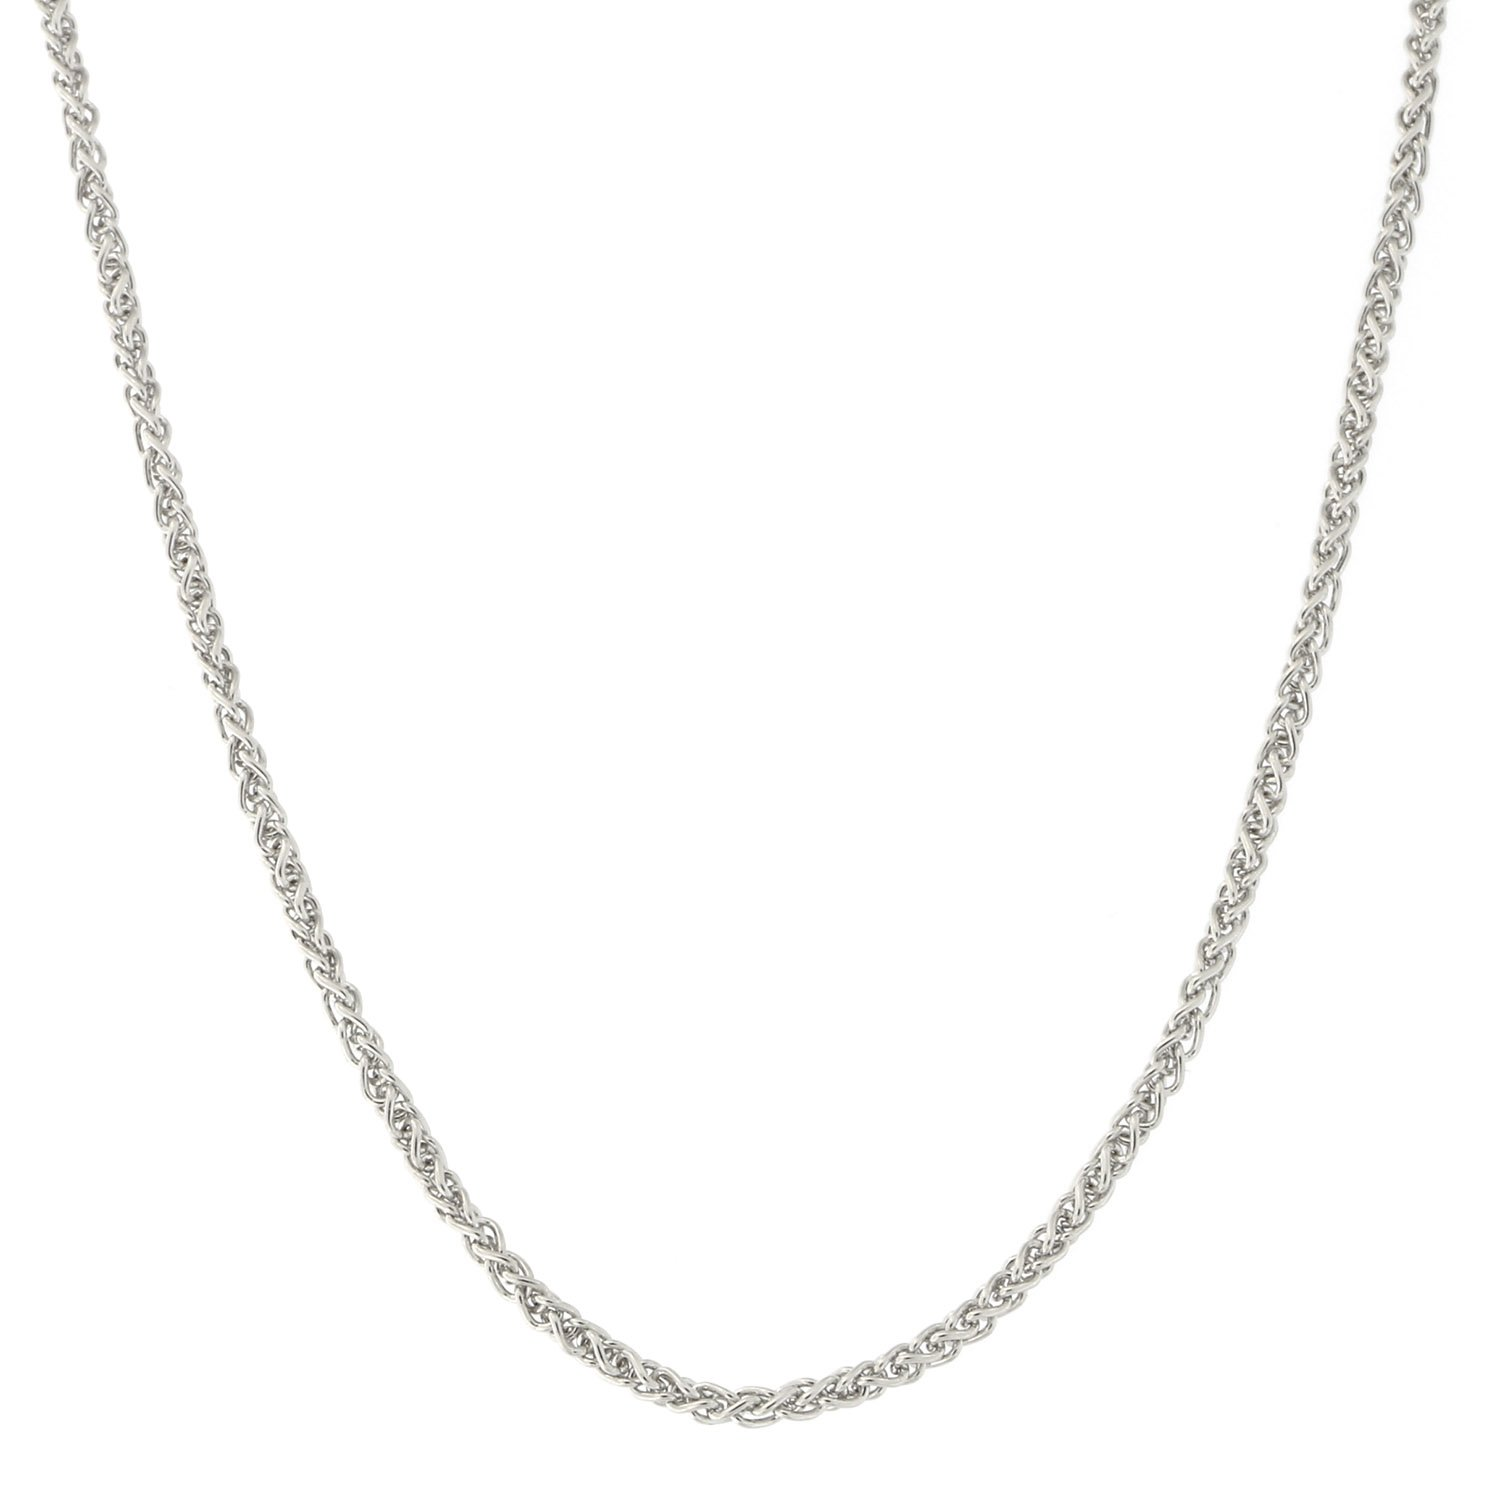 18k White Gold 1.4mm Round Wheat Chain Necklace, 18''